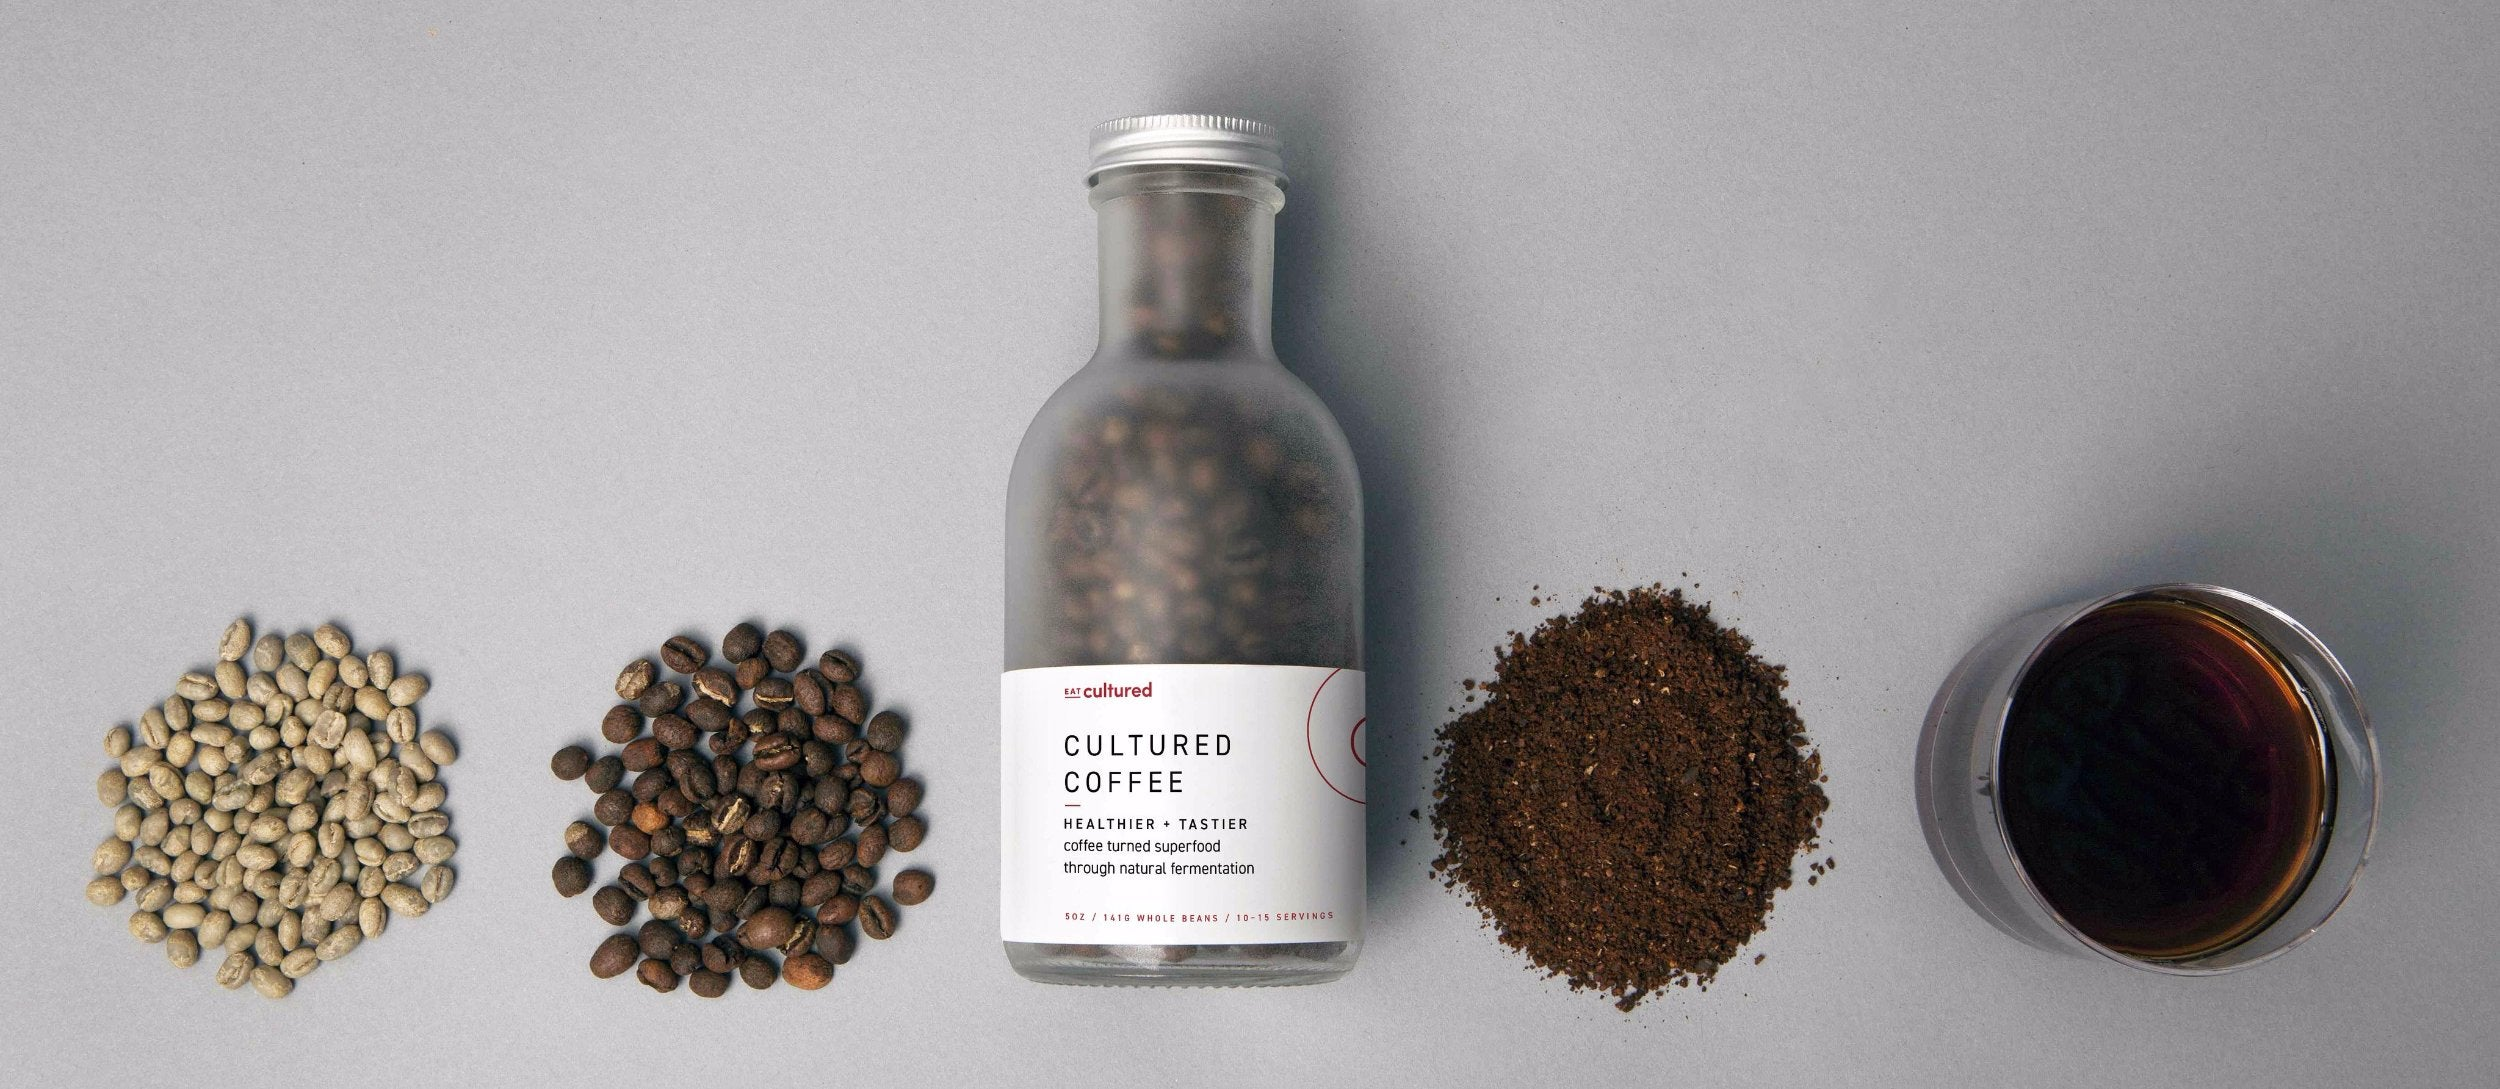 Cultured Coffee - Healthy Stomach Friendly Fermented Coffee